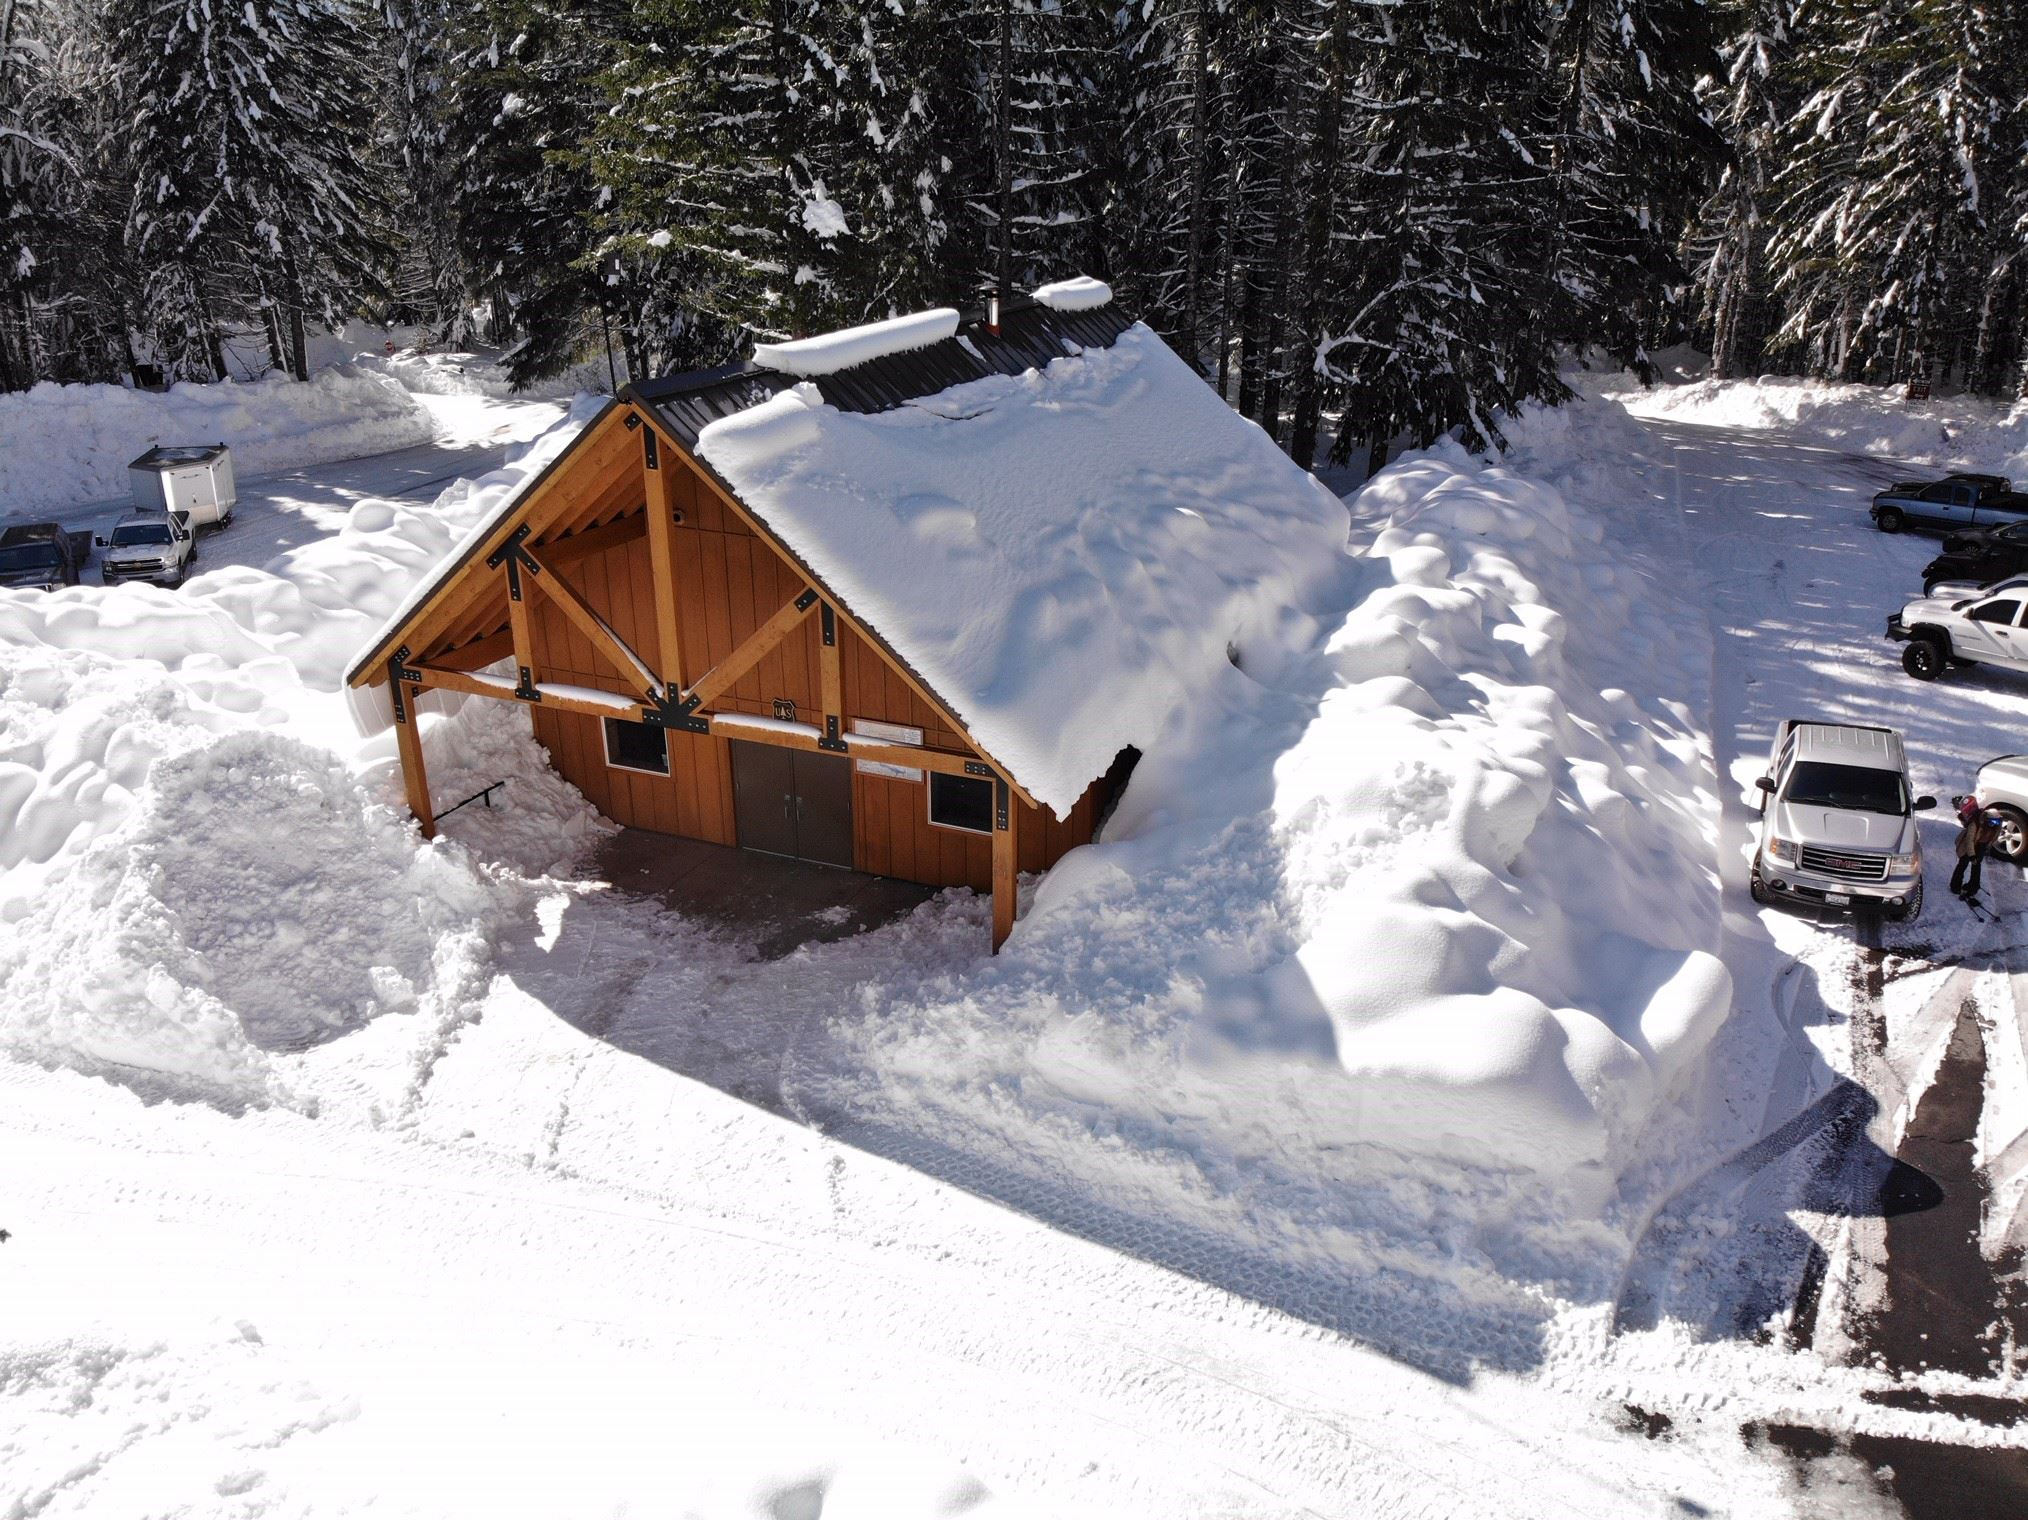 Marble mountain shelter